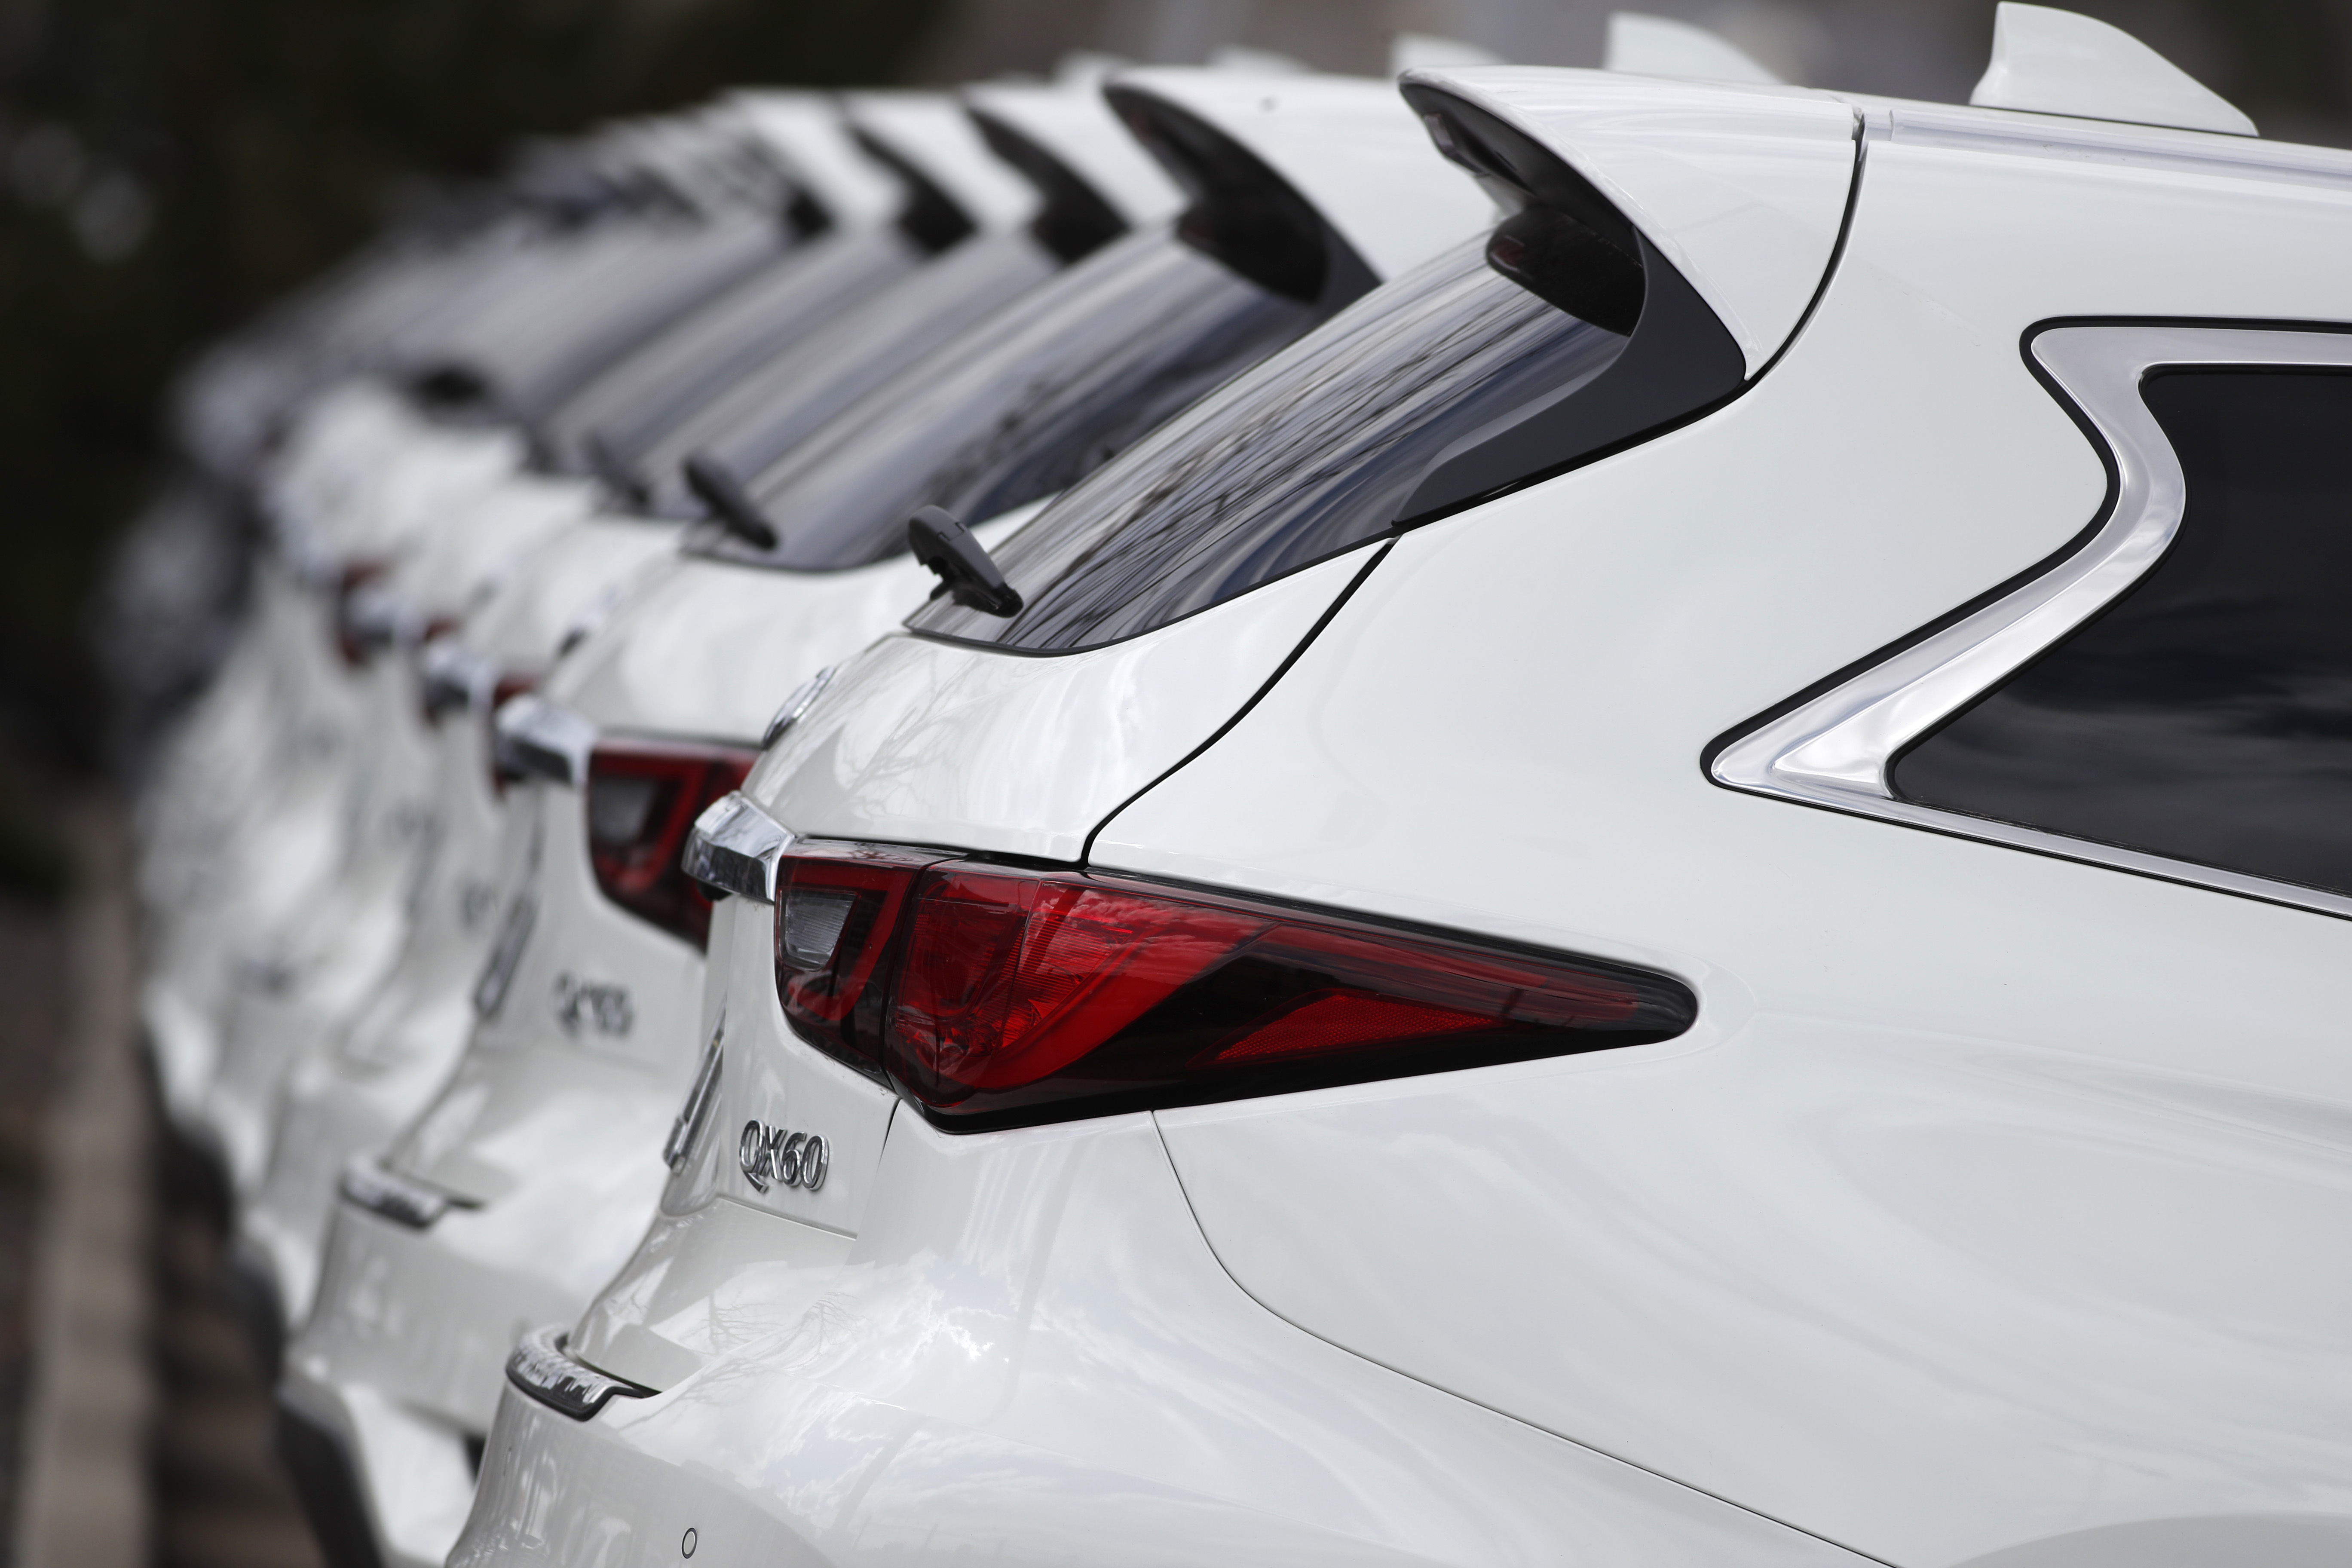 In this Sunday, April 5, 2020, photograph, a long row of 2020 QX60 sports-utility vehicles sits at an Infinti dealership in Highlands Ranch, Colo. (AP Photo/David Zalubowski)